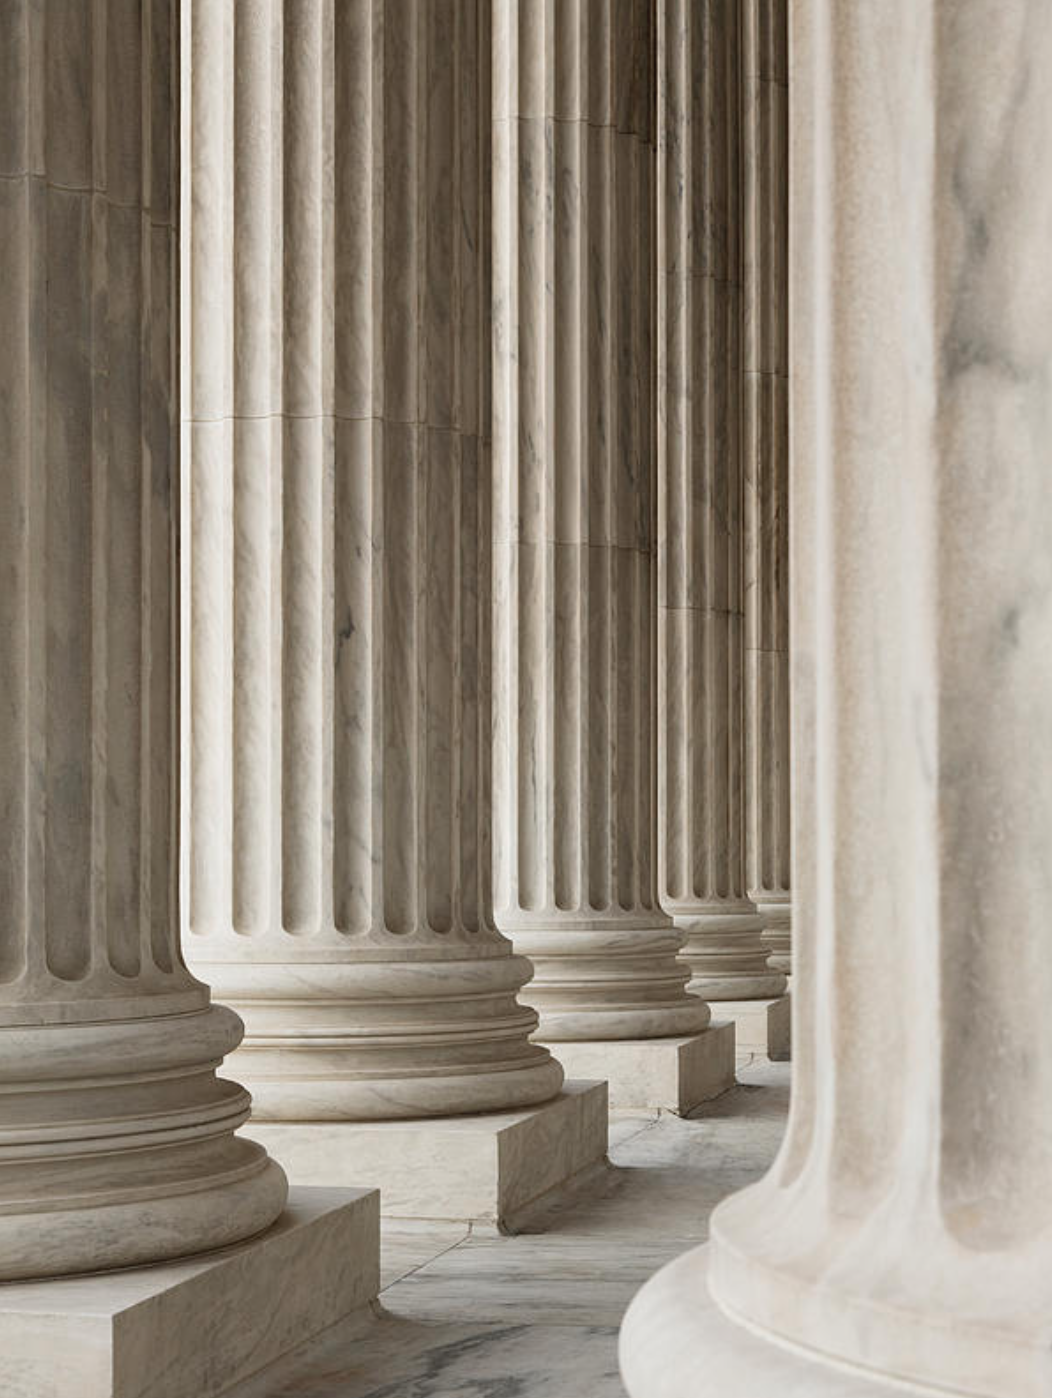 The Design Of The Supreme Court Building In New York City Achieved A Balance Between Classical Grand Neoclassical Columns Architecture Poster Corinthian Column